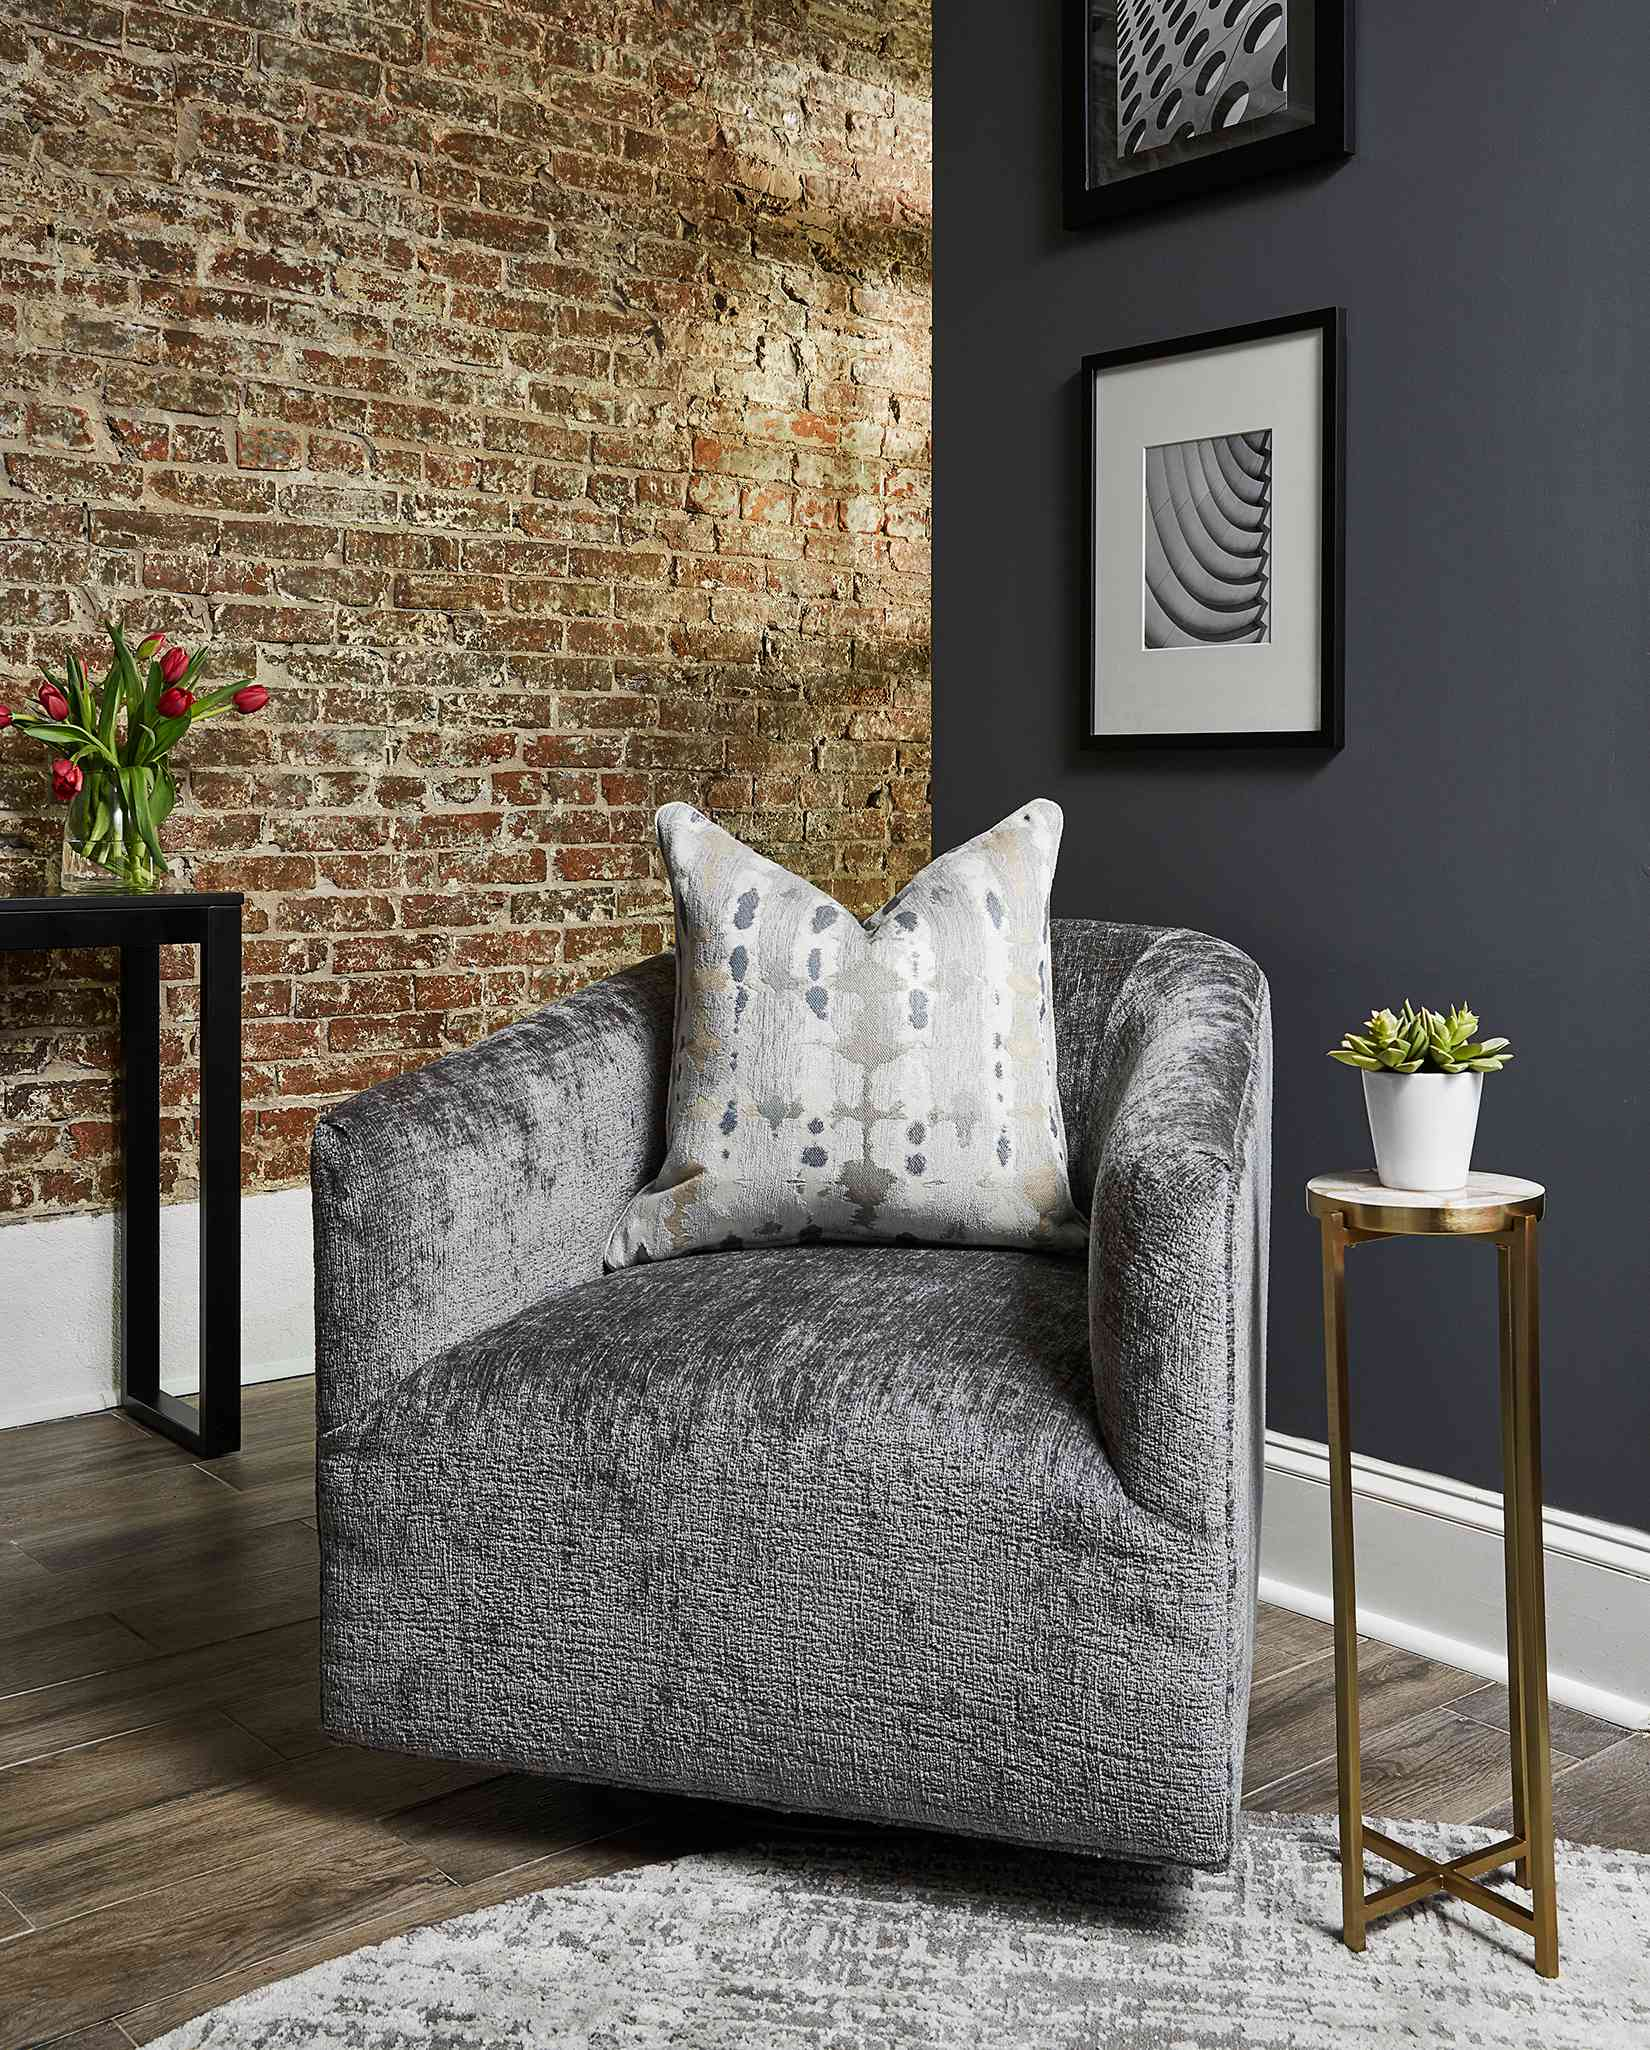 Duke Ellington home tour - cozy reading corner with an oversized chair and brick wall